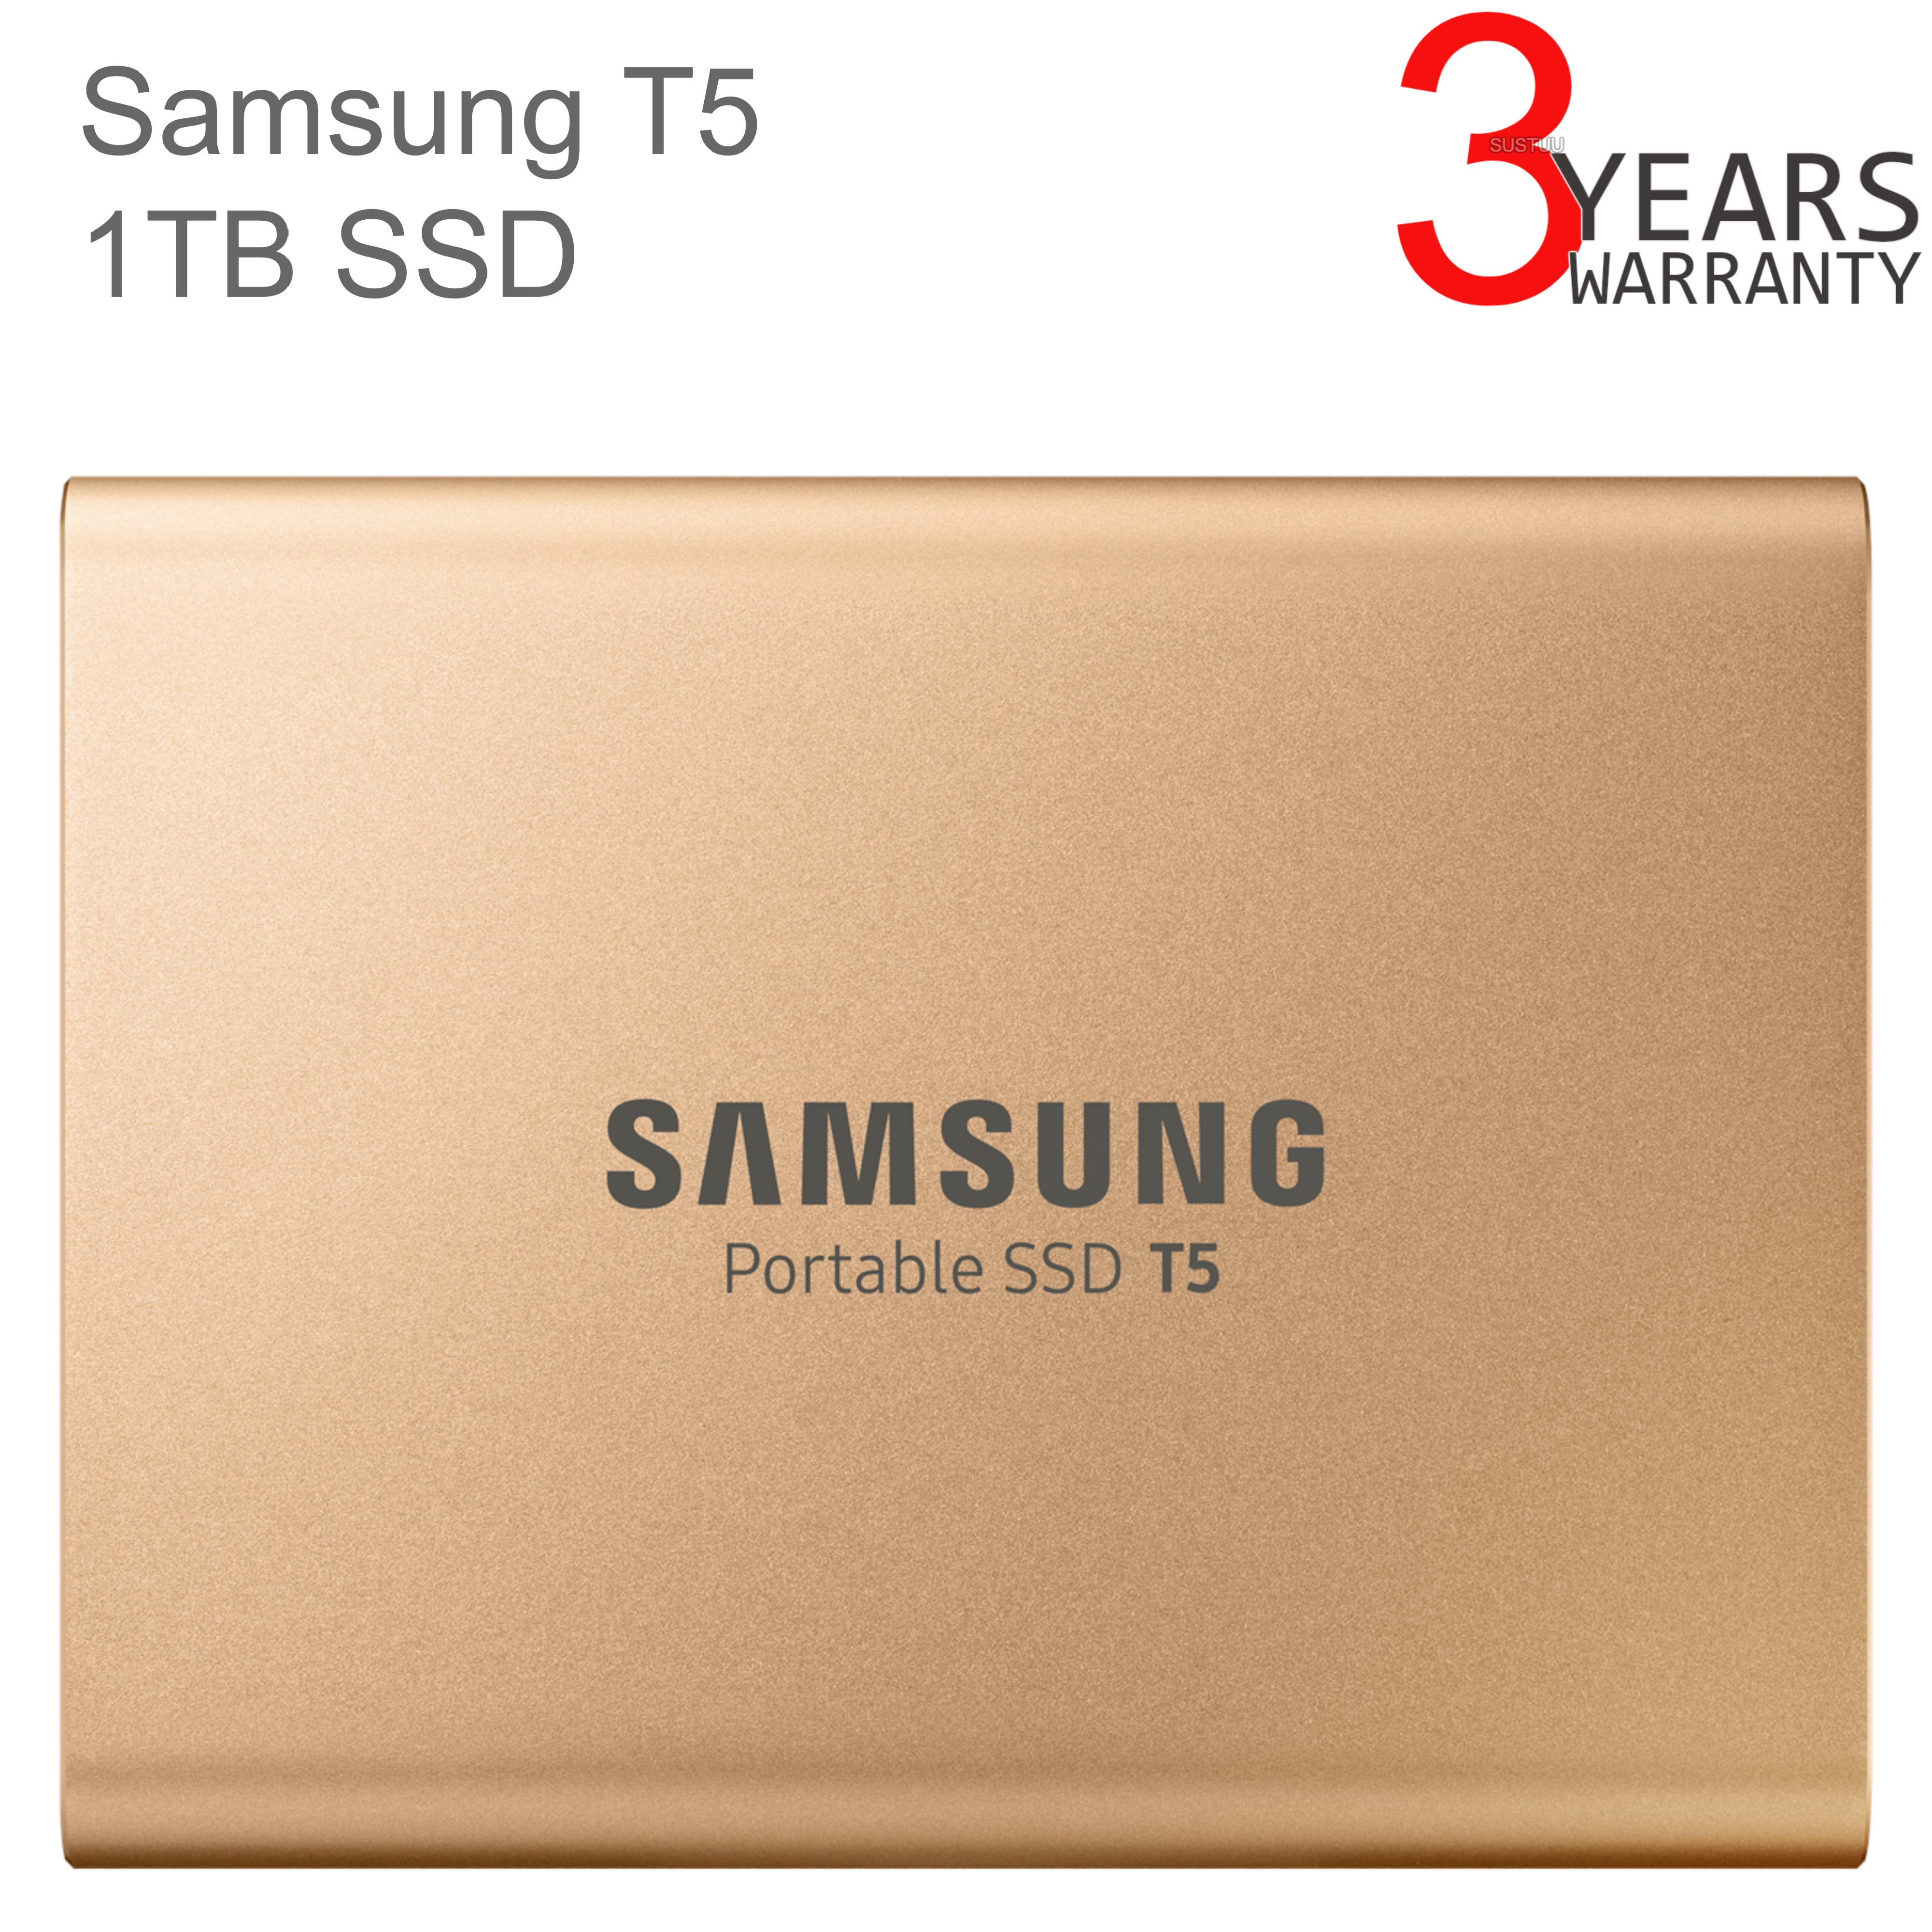 Samsung T5 1TB USB 3.1 Type-C Portable External SSD | Solid State Drive | For Desktops & Laptops | Rose Gold